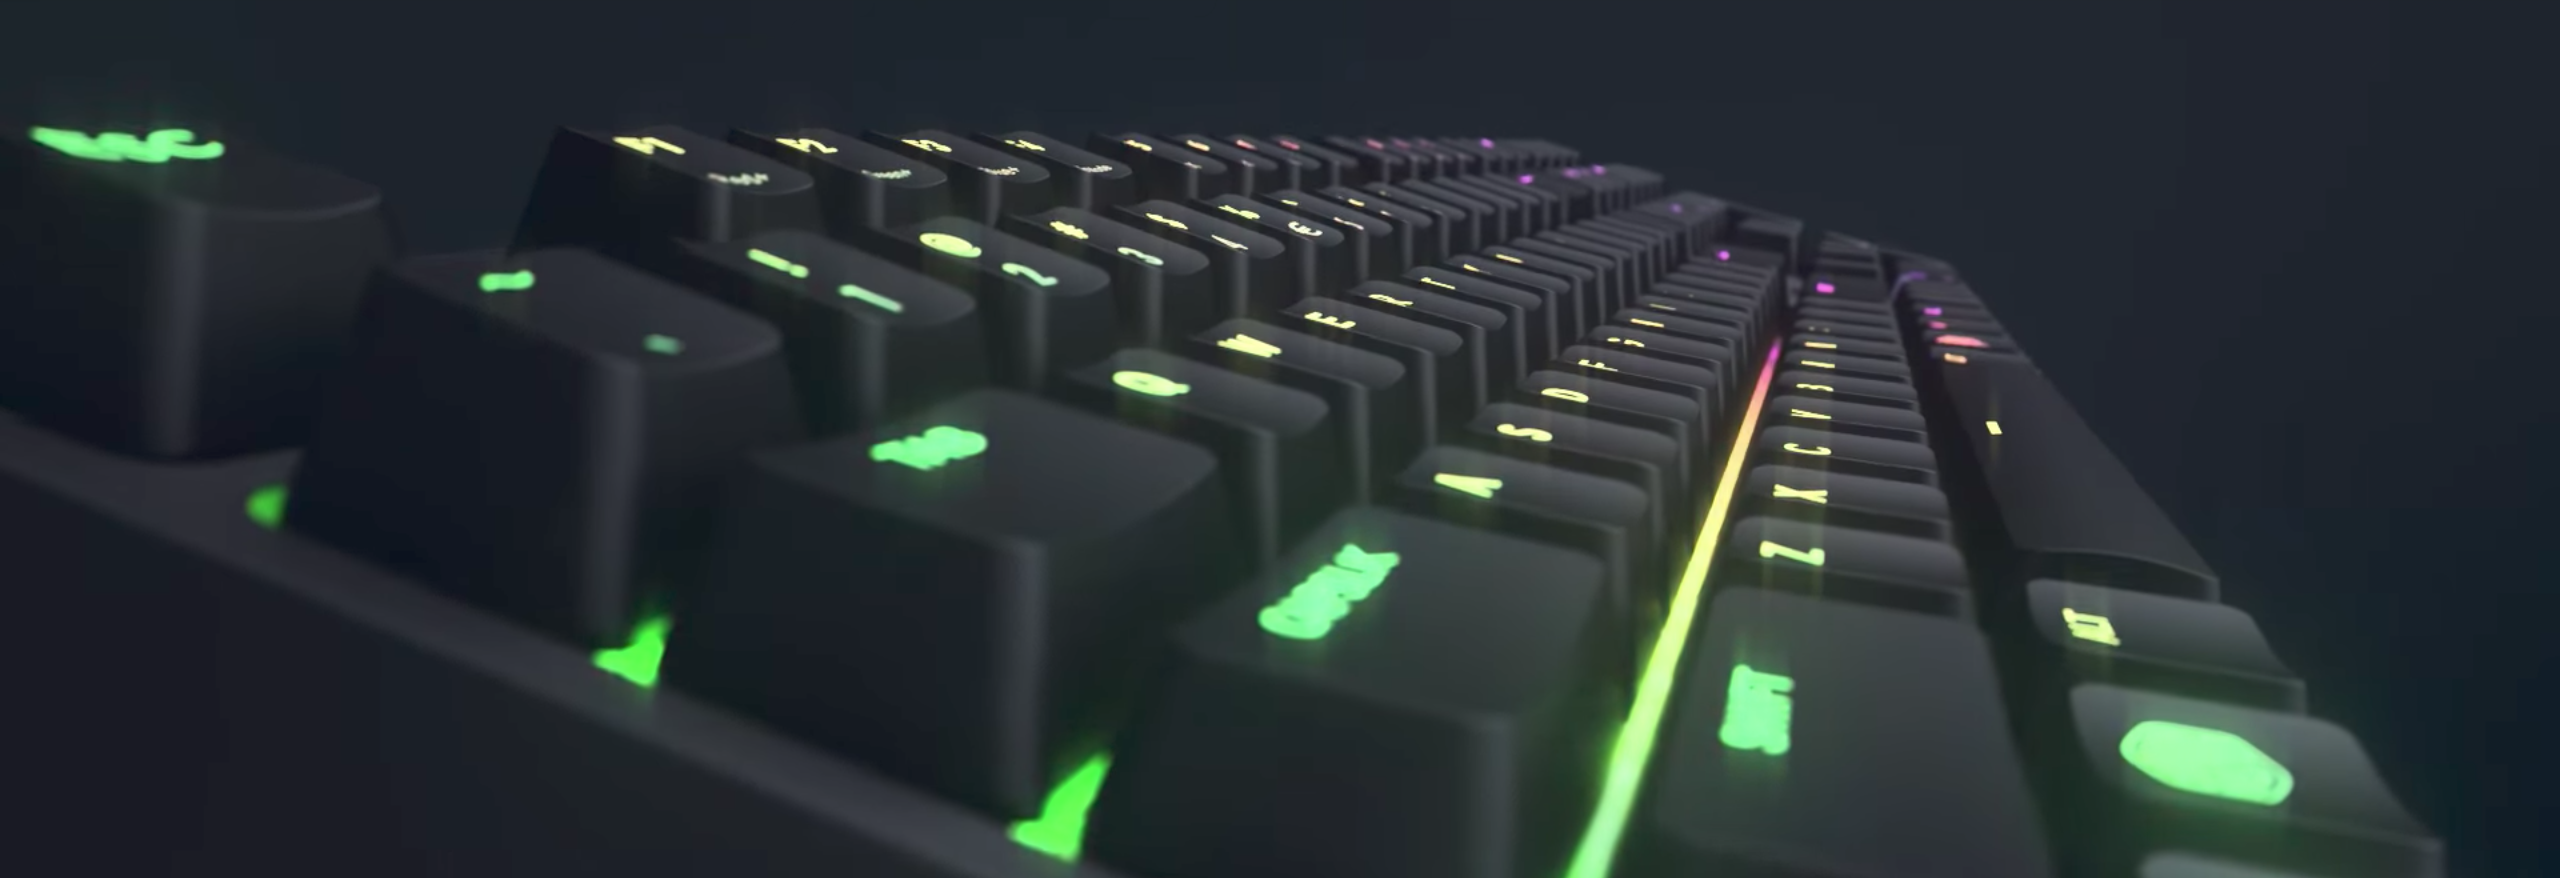 The Best Mechanical Keyboard for Gaming 2019